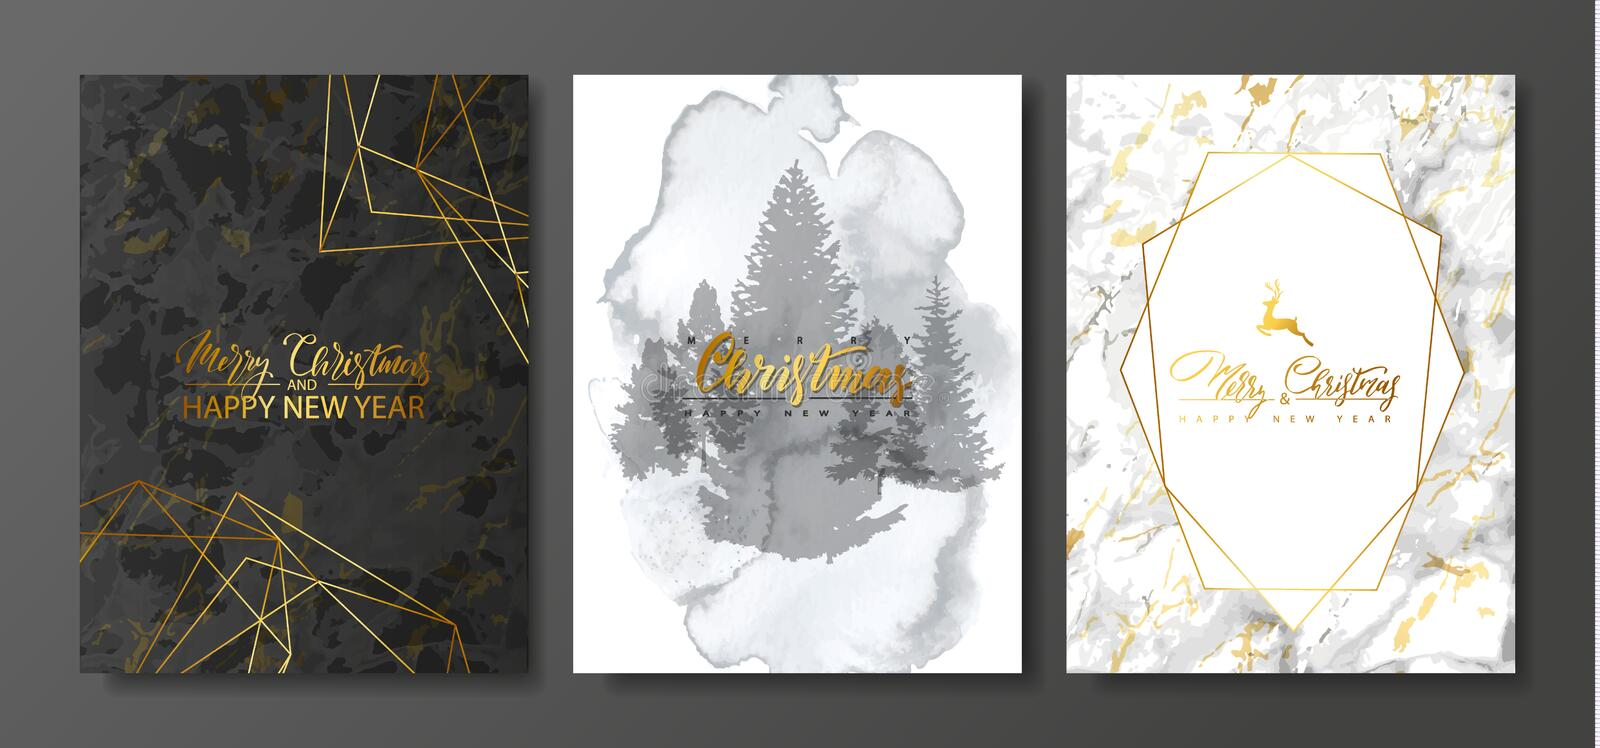 2019 Merry Christmas and Happy New Year Luxury cards collection with marble and watercolor texture and Golden geometric shape .Vec vector illustration